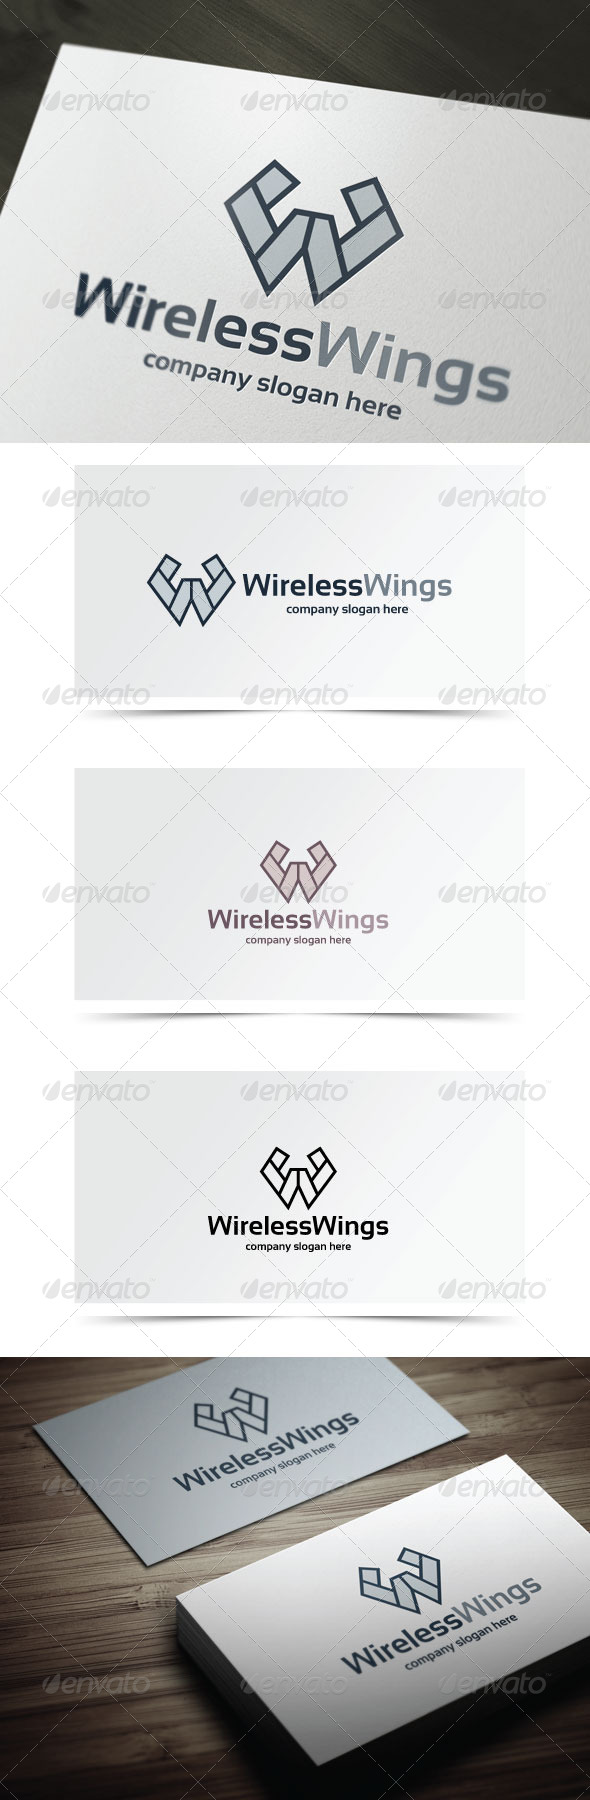 GraphicRiver Wireless Wings 6418163